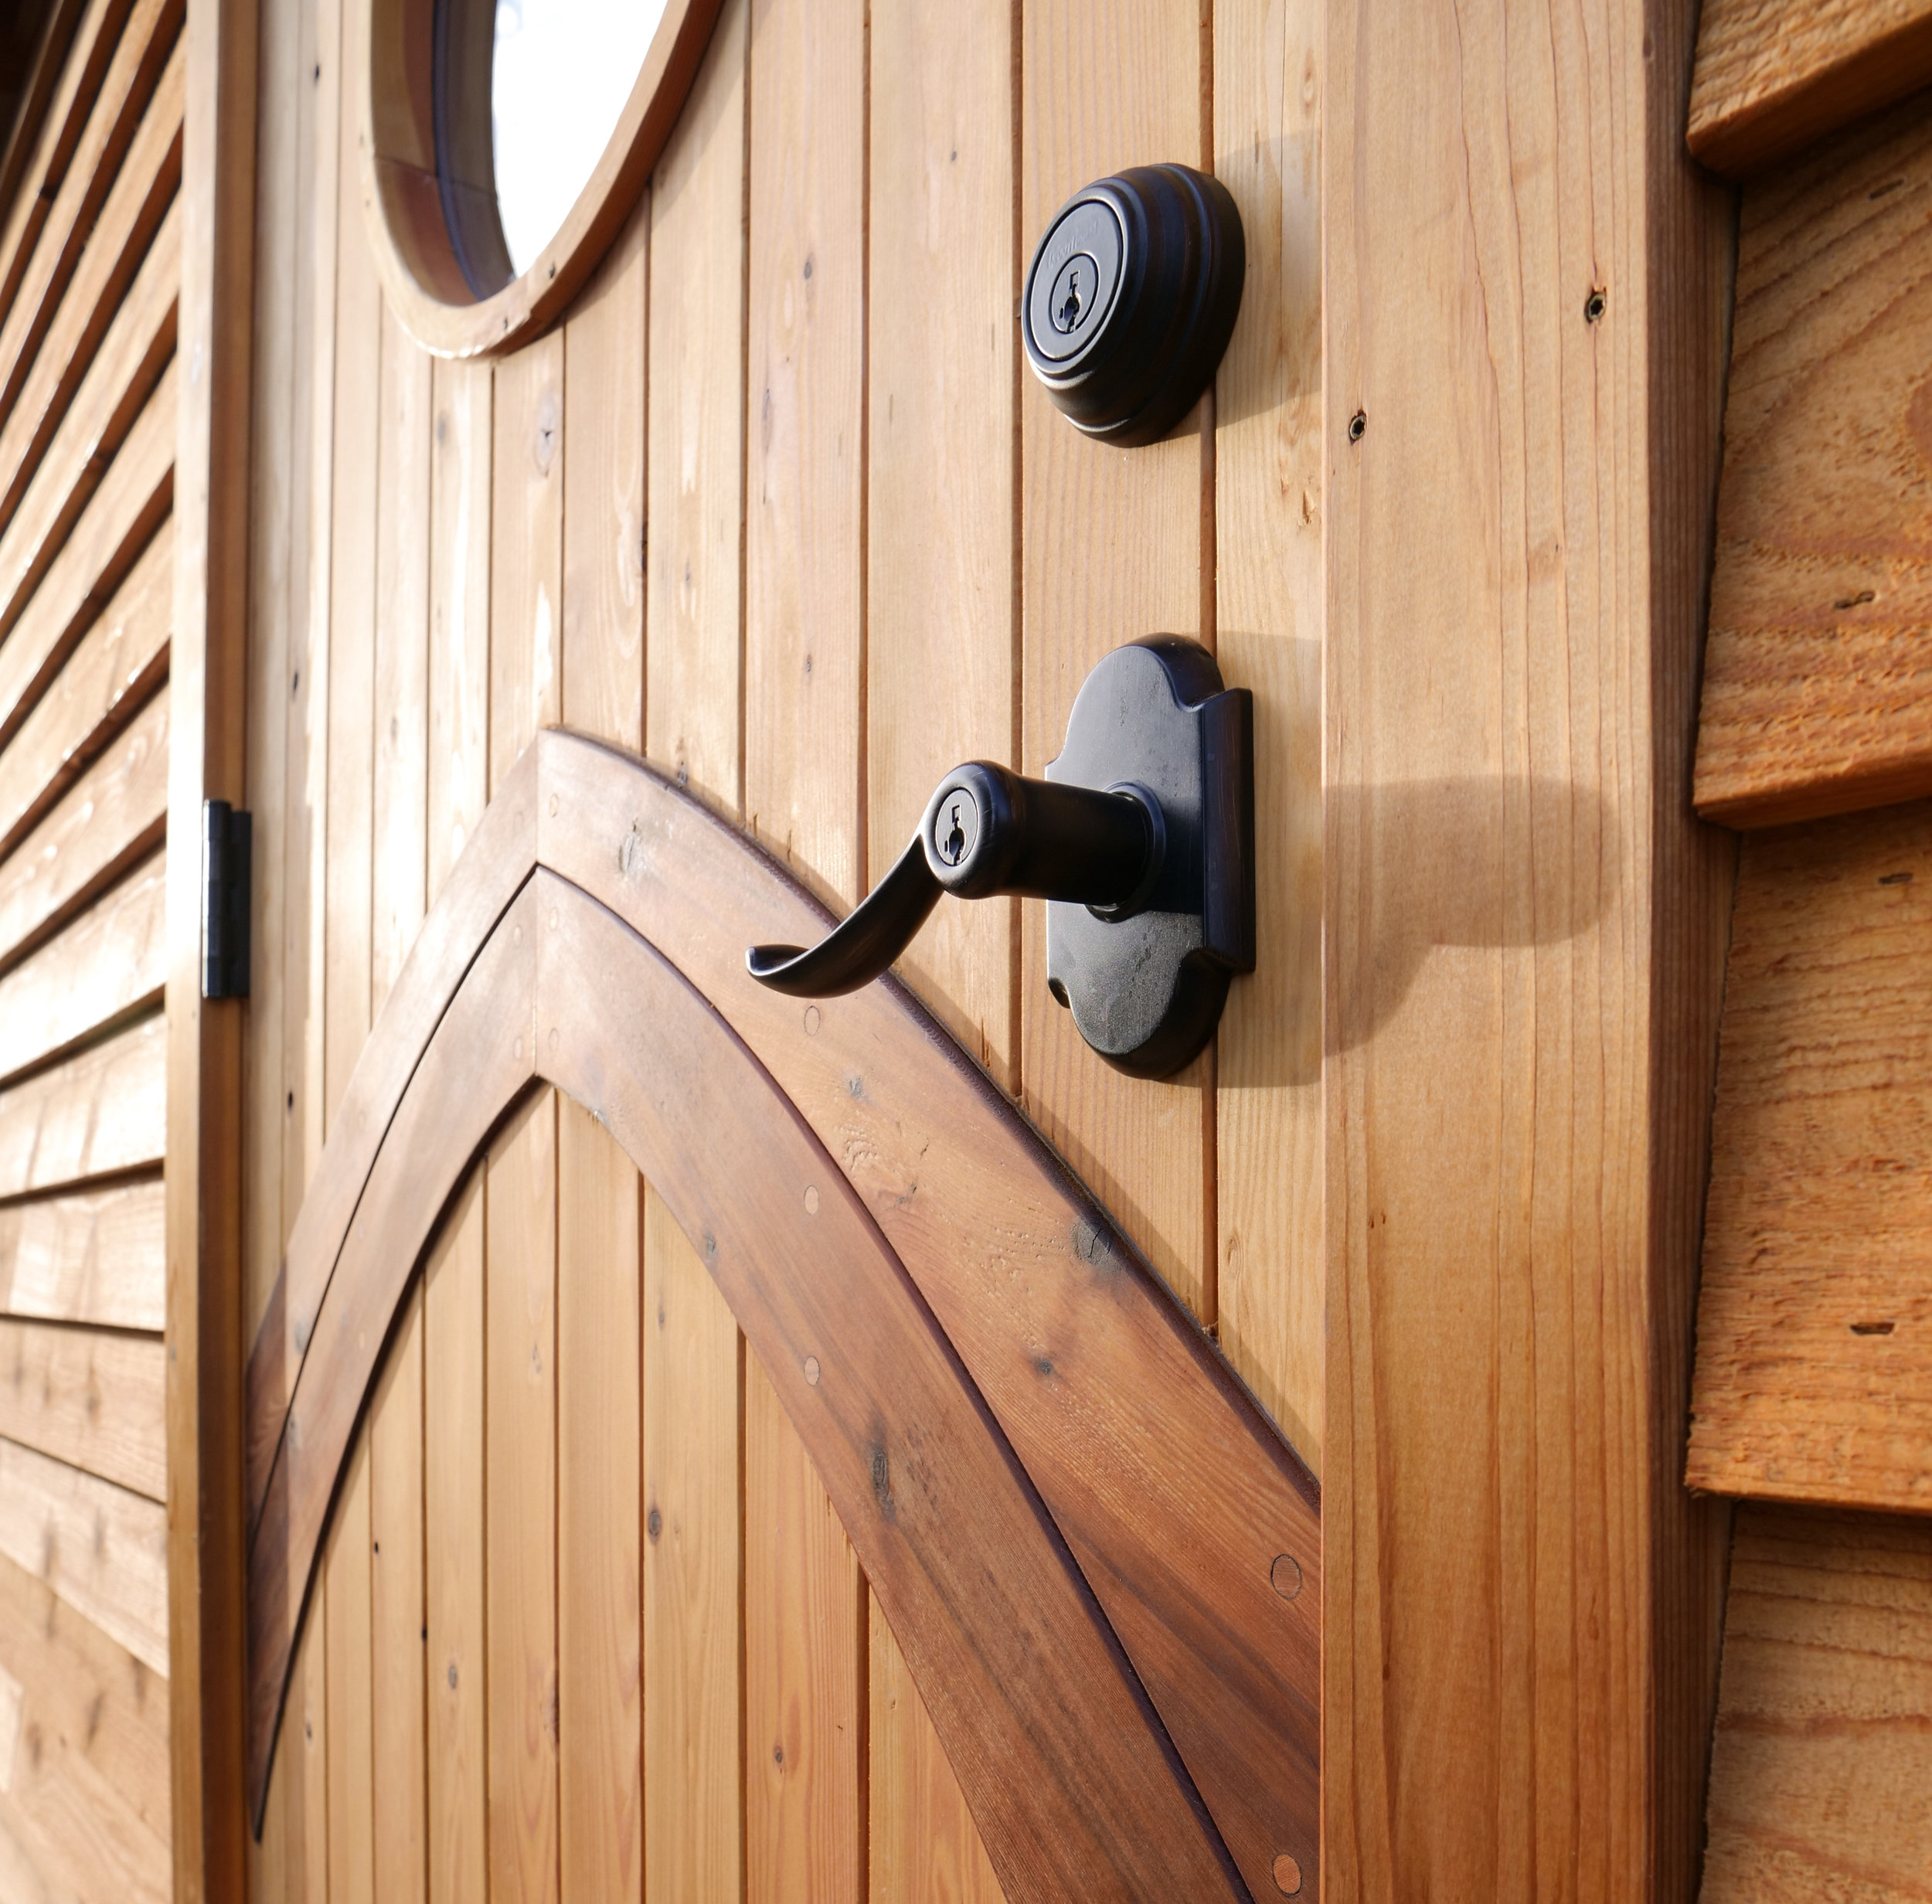 Hand-built Windows and Doors - Solid wood designs, engineered for function and longevity